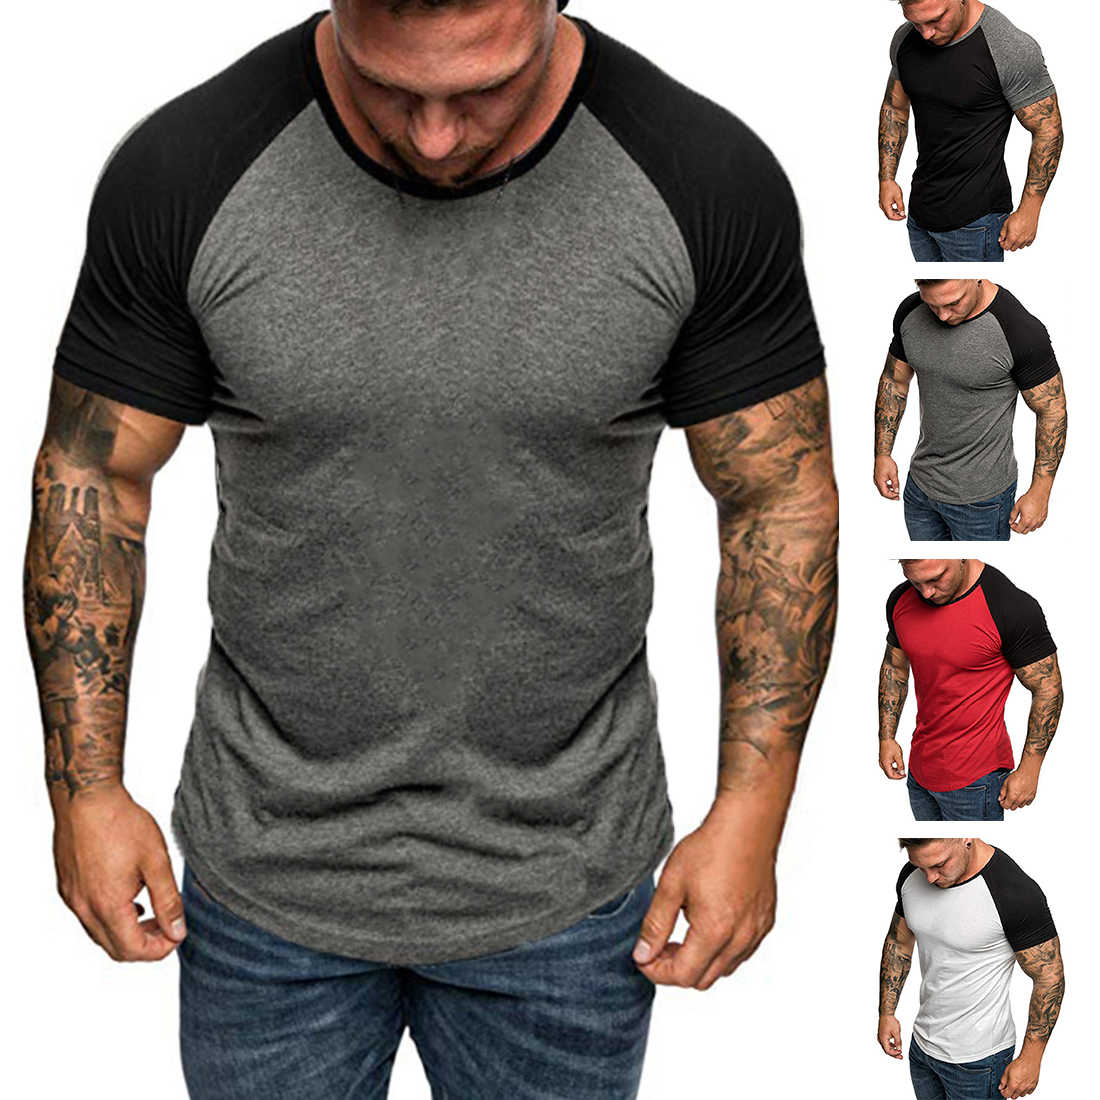 HEFLASHOR Summer mens patchwork short t shirt slim sports   top tee Raglan sleeve plus size t shirt camiseta hombre